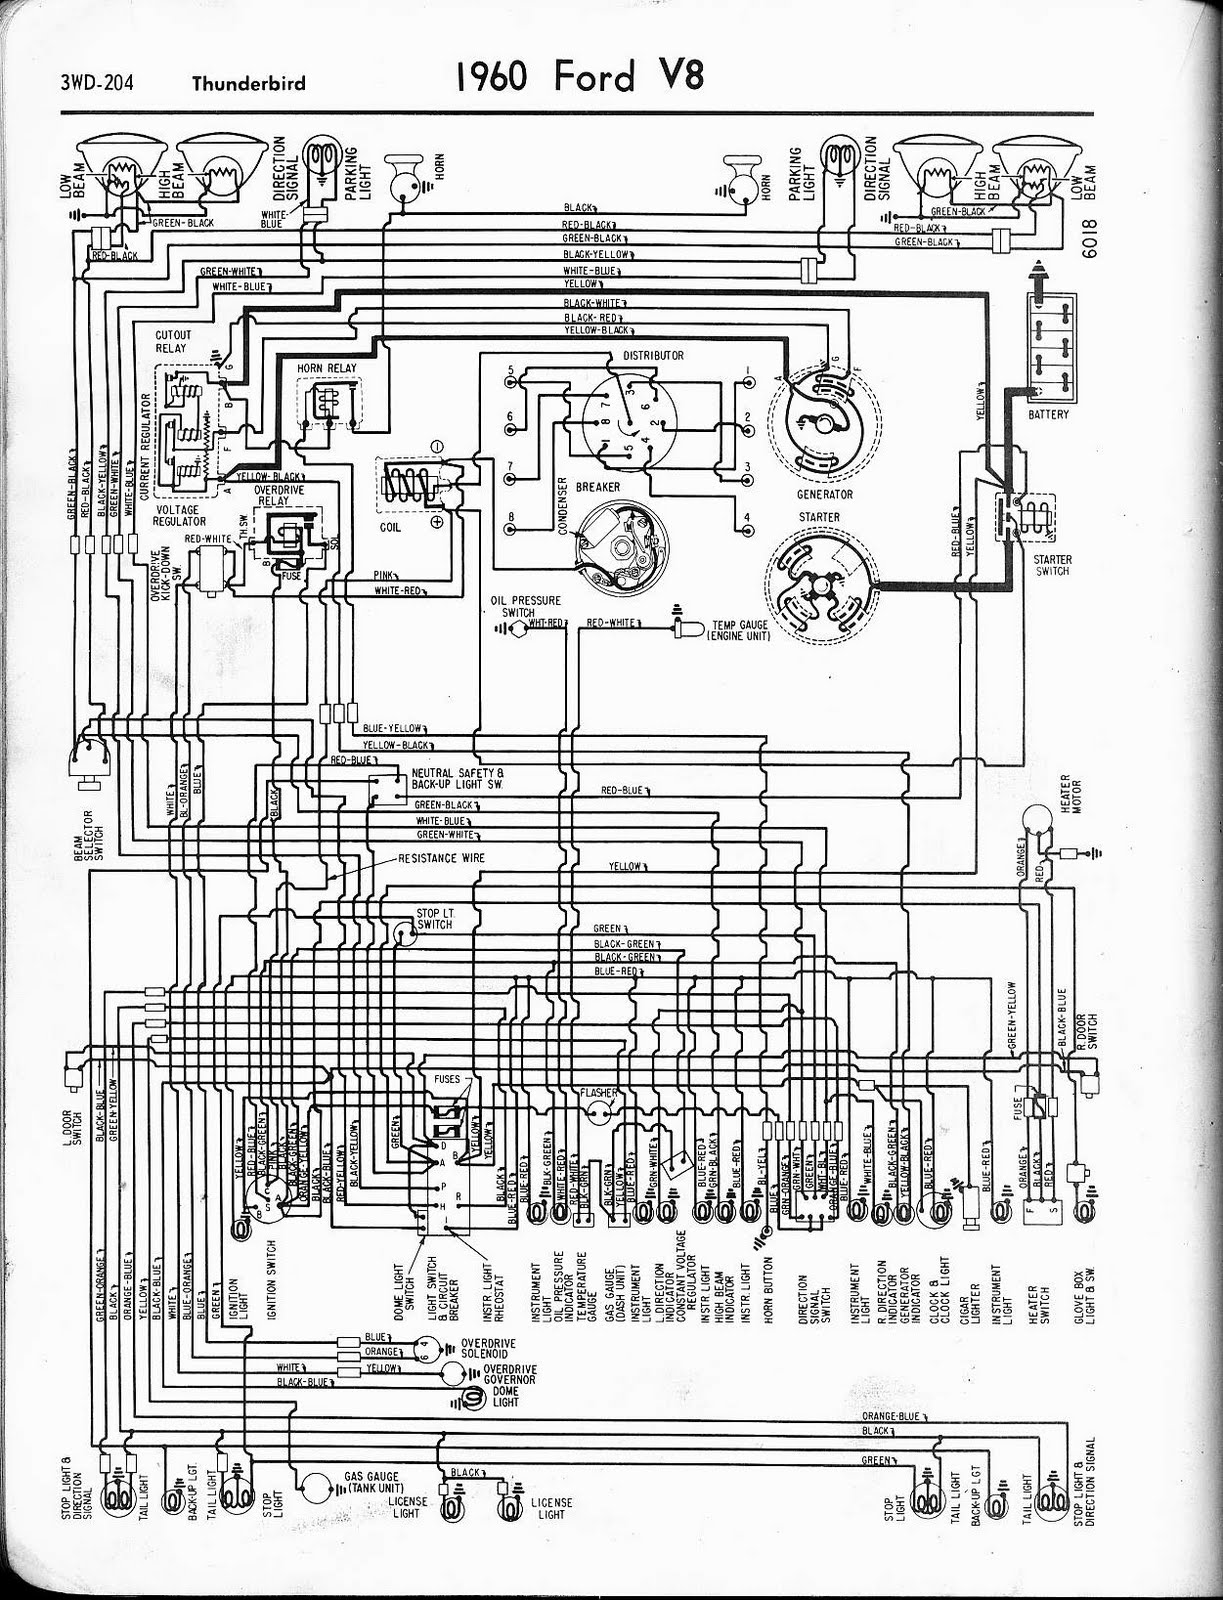 97 thunderbird wiring diagram wiring diagrams konsult 1997 ford thunderbird wiring diagram [ 1223 x 1600 Pixel ]